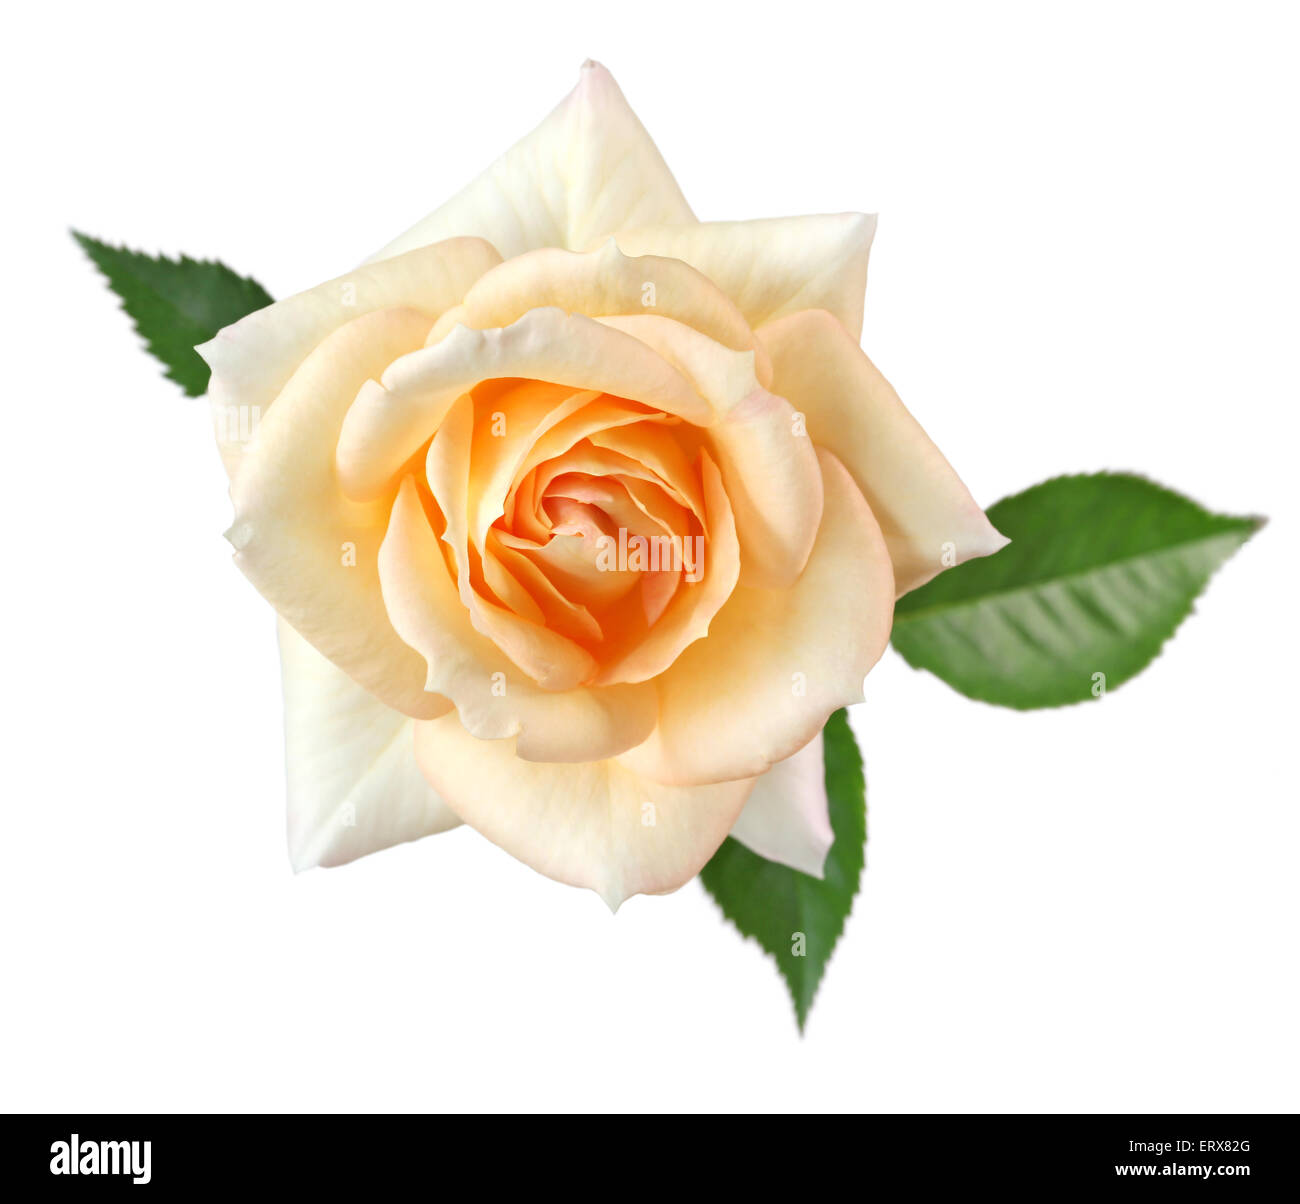 rose fujisan forever isolated on white background, apricot color - Stock Image